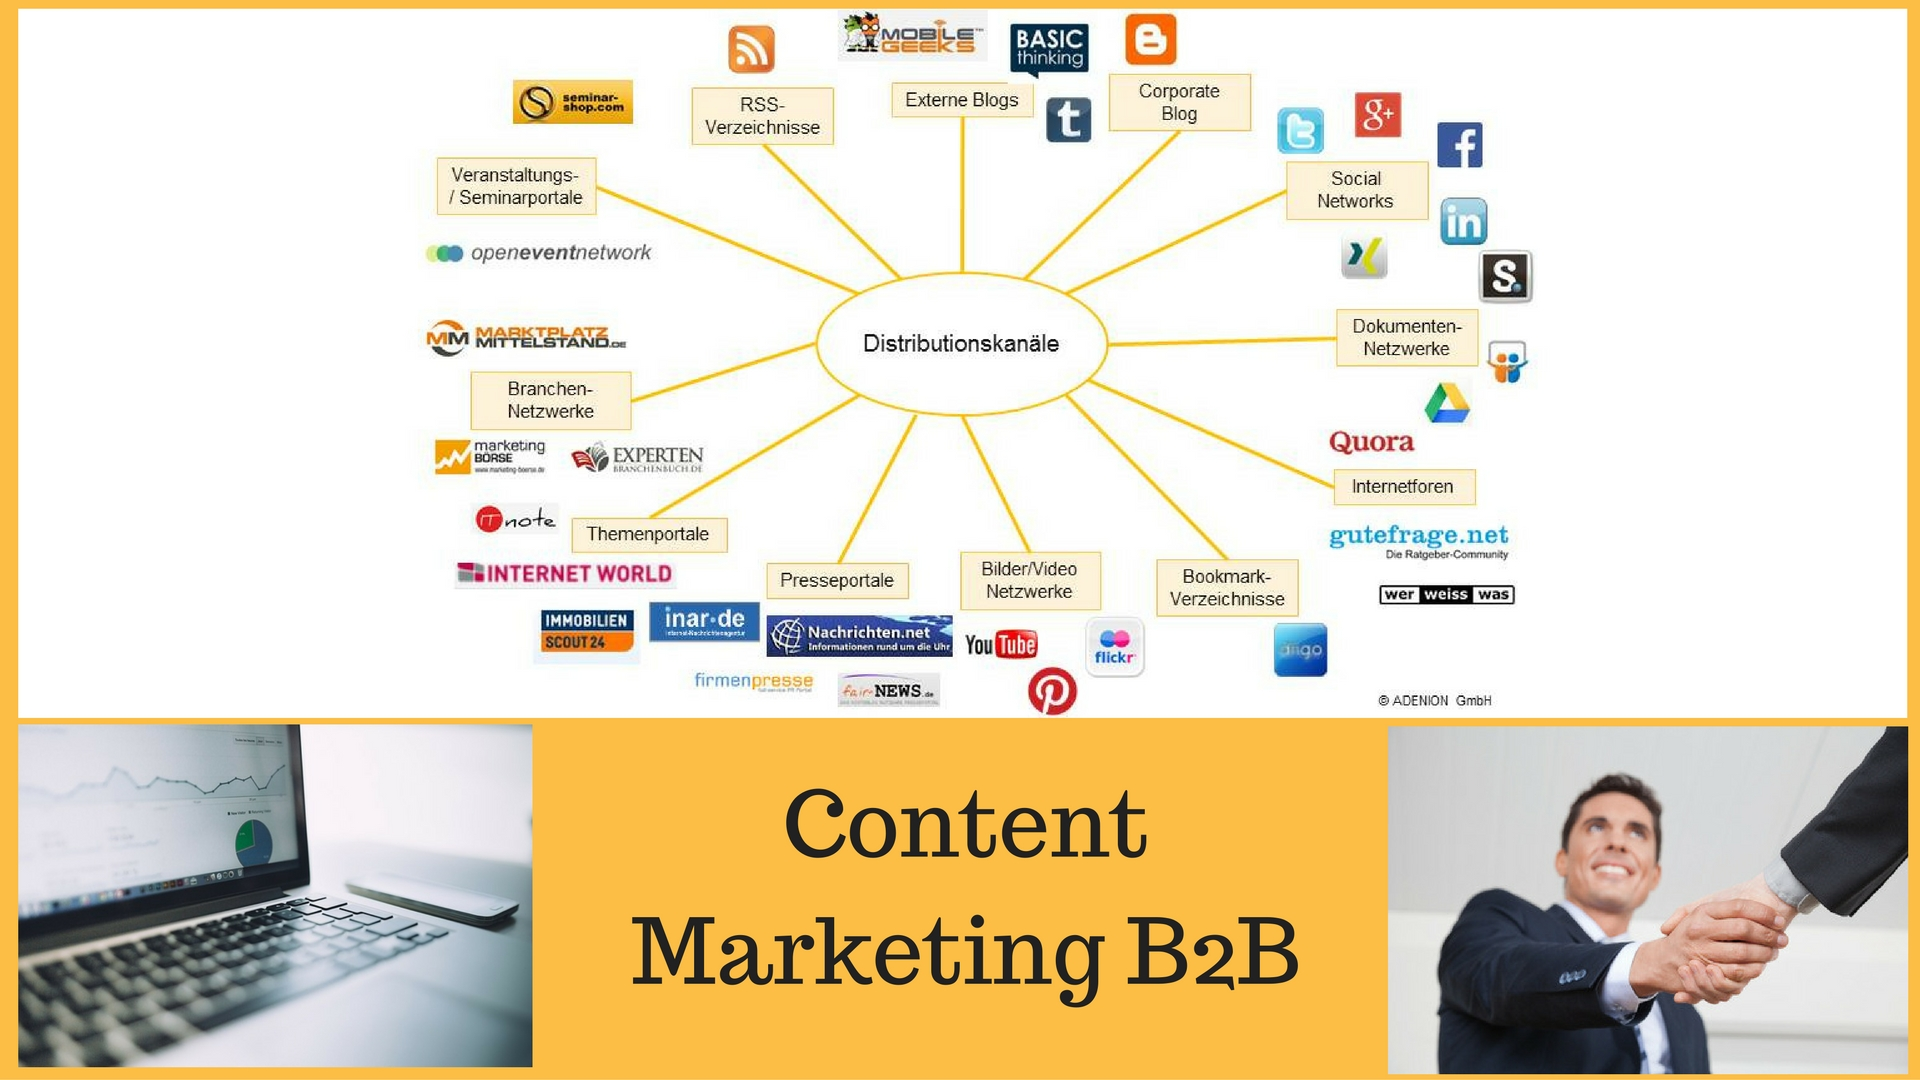 Content Marketing und PR im B2B